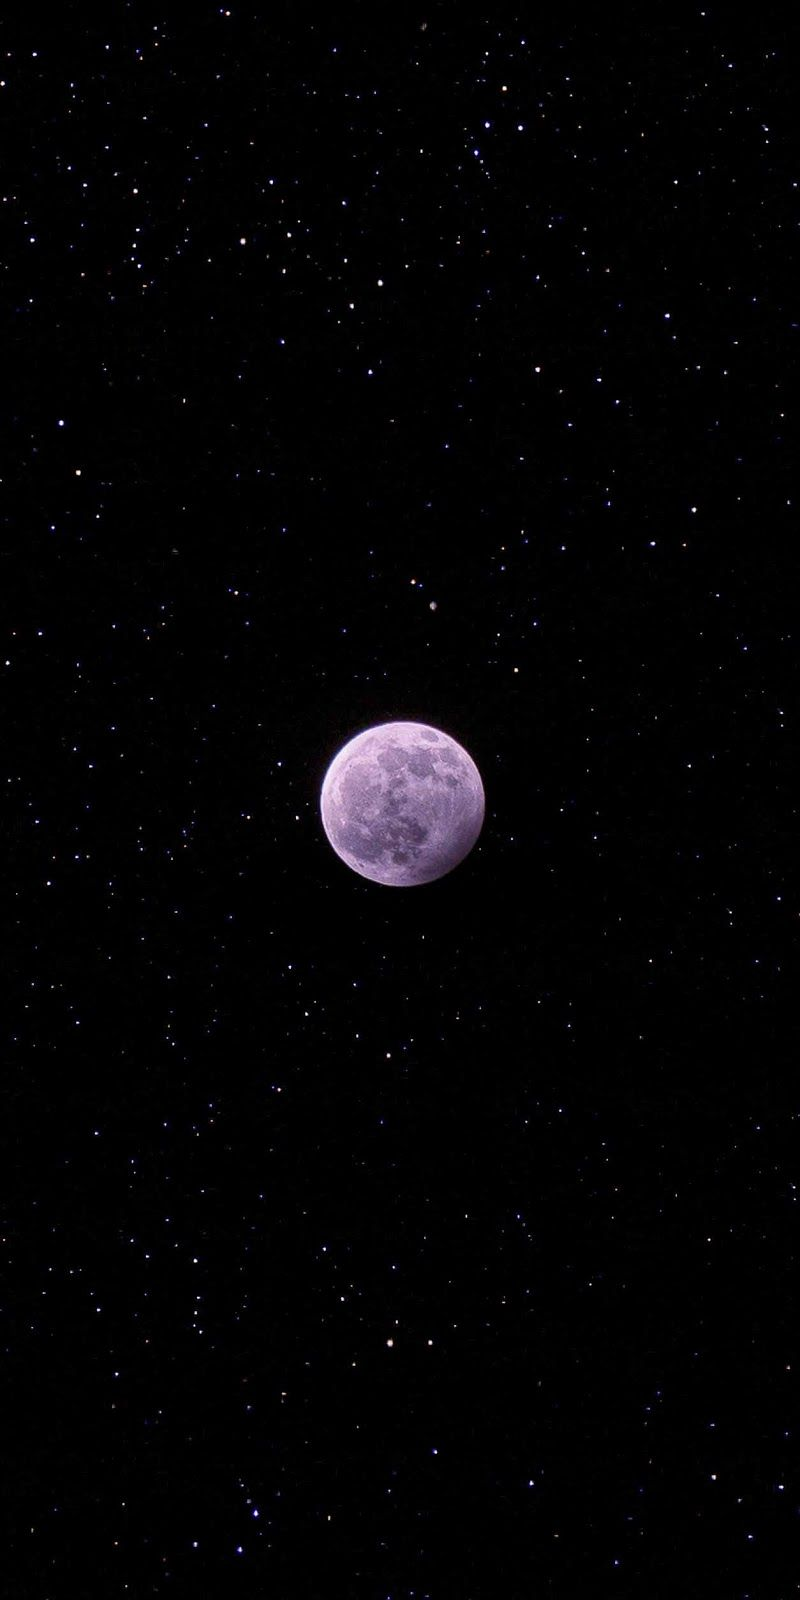 Moon Of The Night In 2020 Galaxy Wallpaper Iphone Black Aesthetic Wallpaper Galaxy Wallpaper